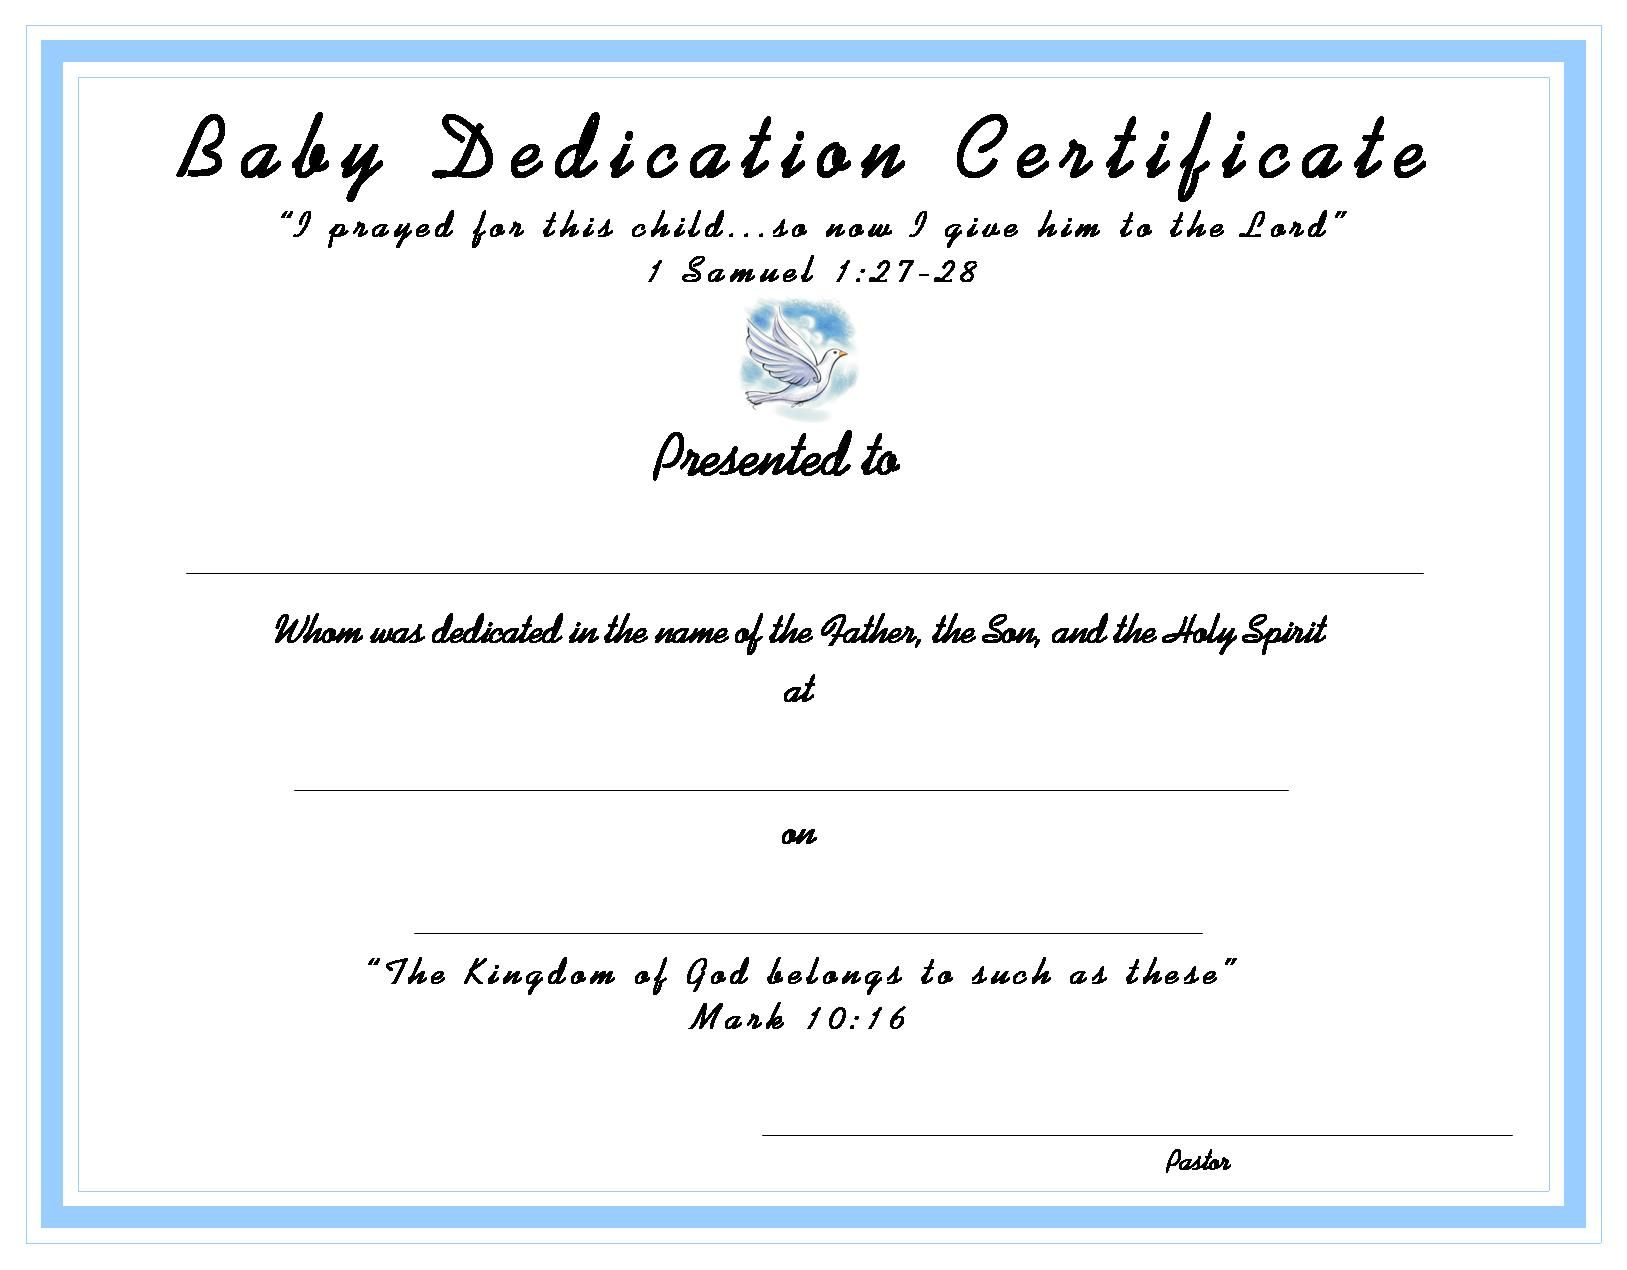 WwwCertificatetemplateOrgBaby Dedication Certificate For Your